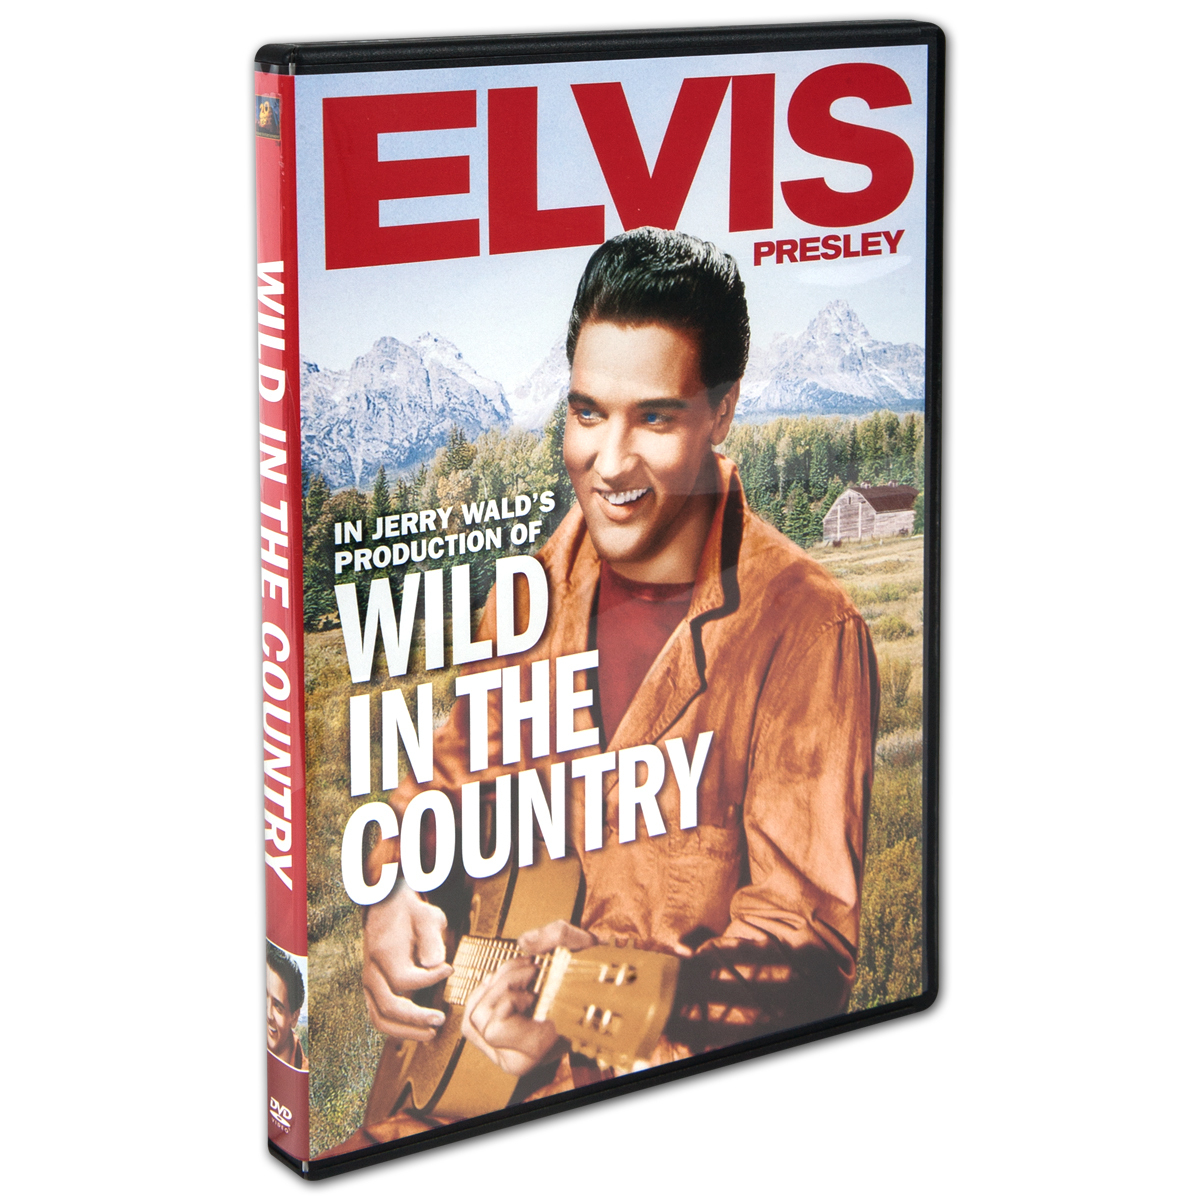 ELVIS Wild In The Country DVD